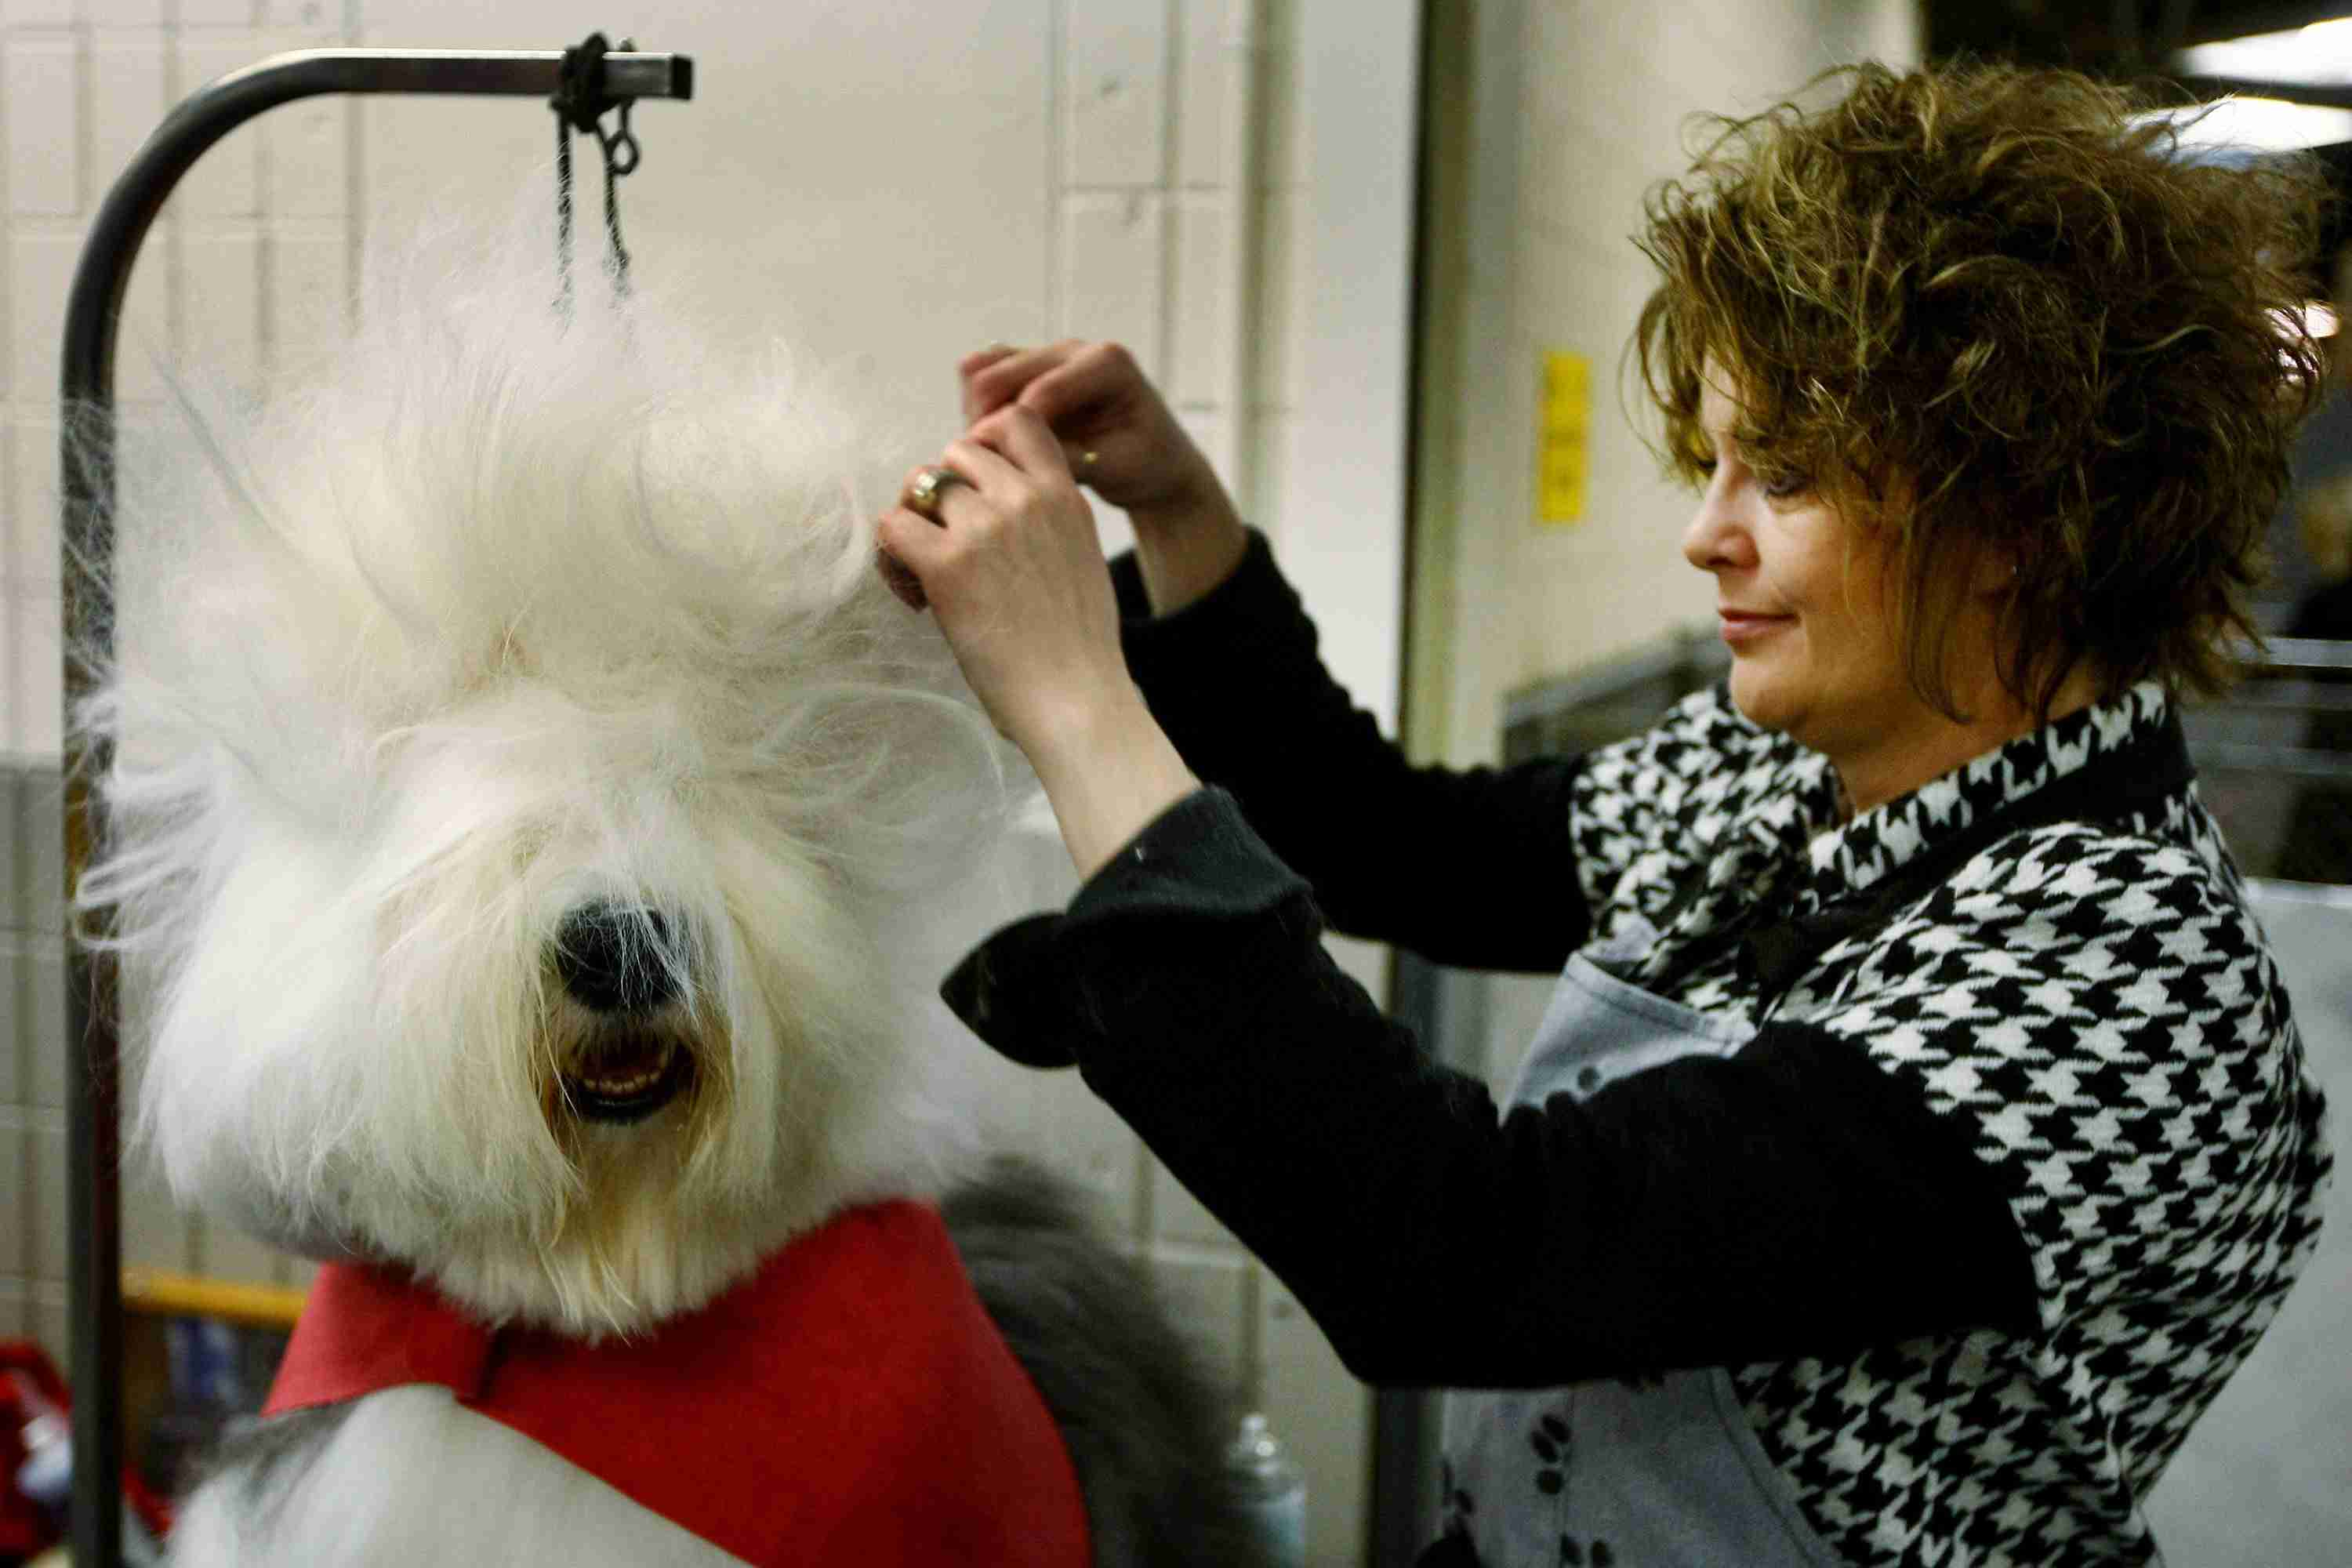 A woman grooming a dog